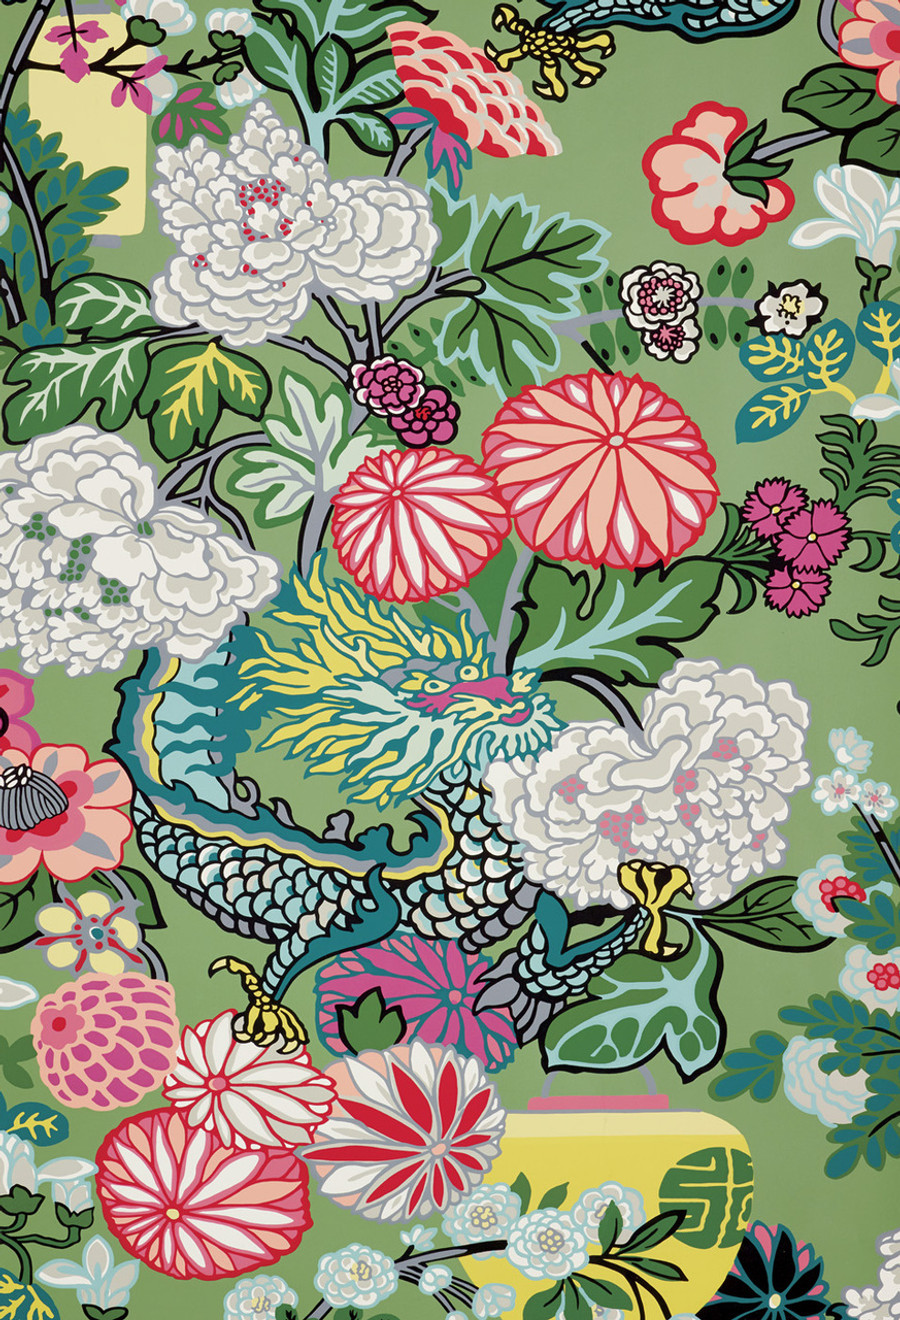 Schumacher Chiang Mai Dragon Jade Wallpaper 5001067 - Priced by the Single Roll - Sold by the Triple Roll